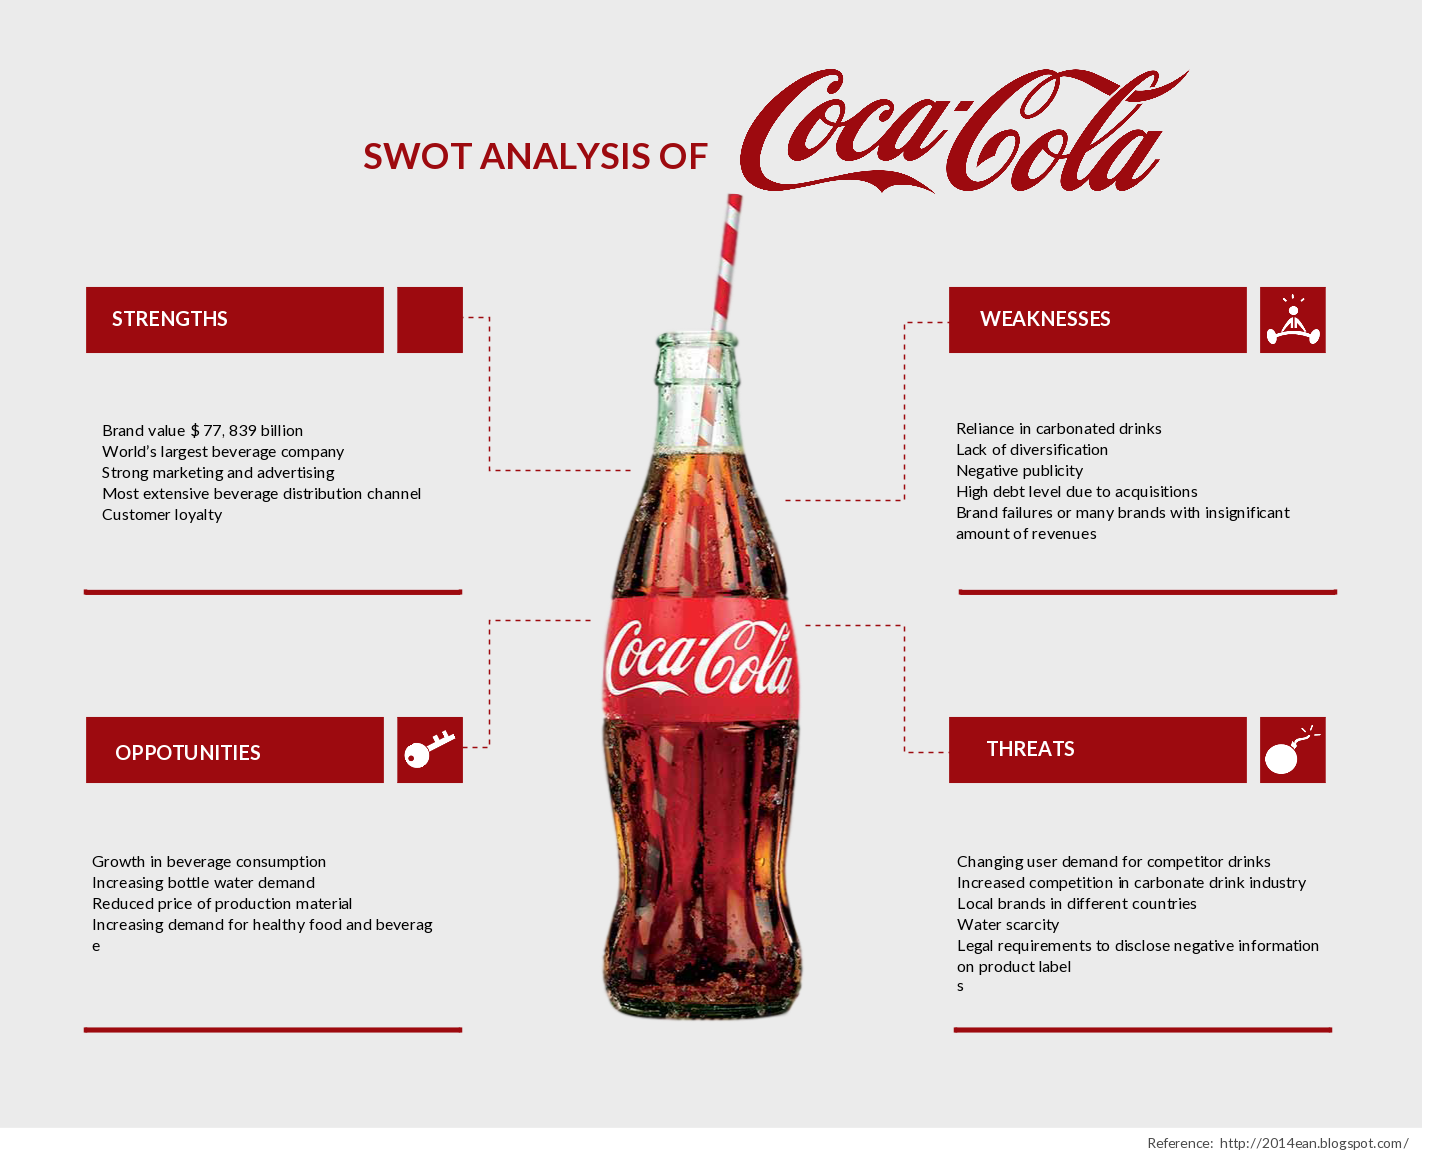 Coca-Cola SWOT Analysis